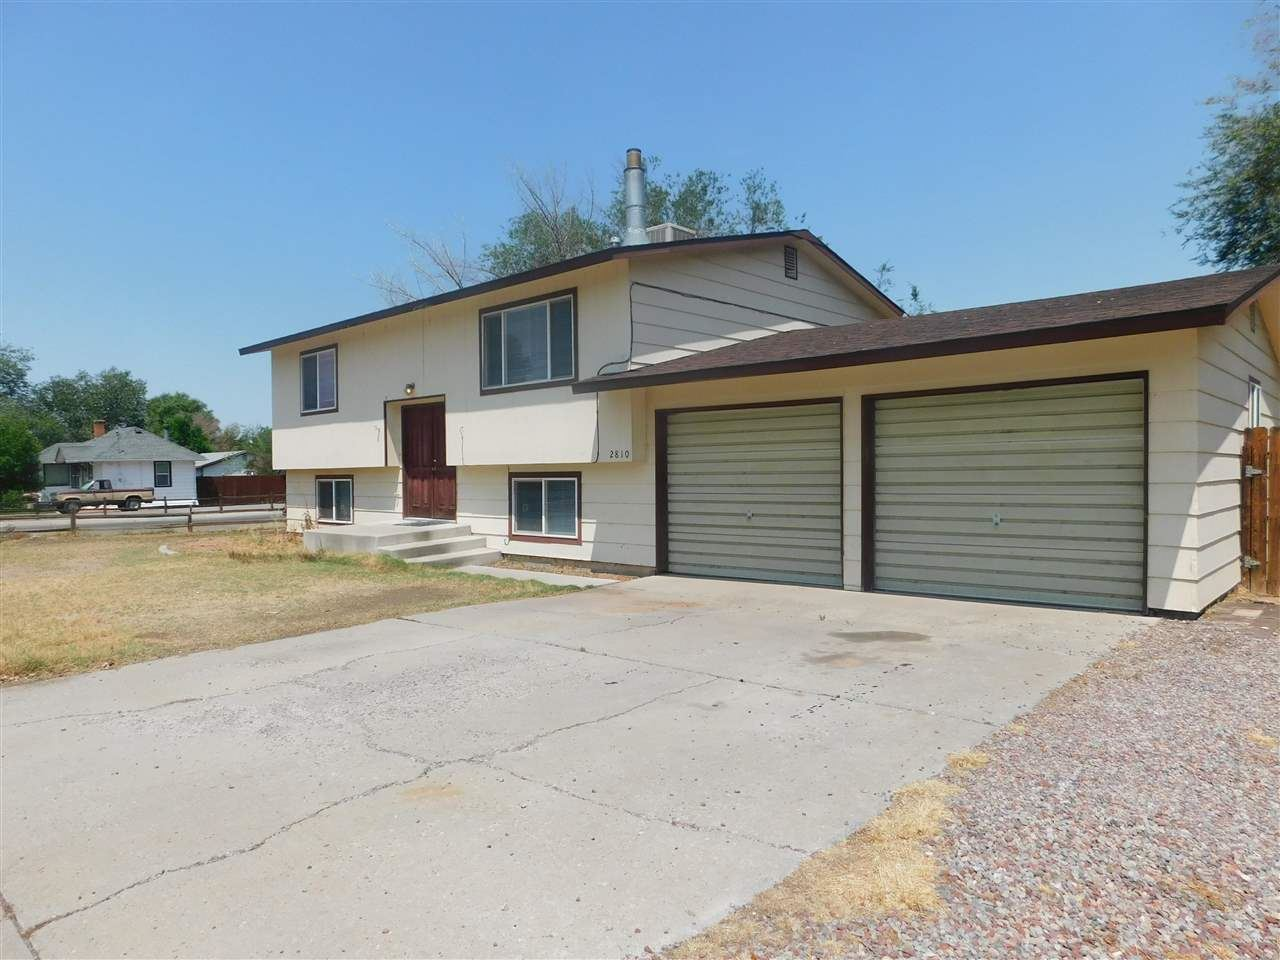 Photo of 2810 Orchard Avenue, Grand Junction, CO 81501 (MLS # 20213802)